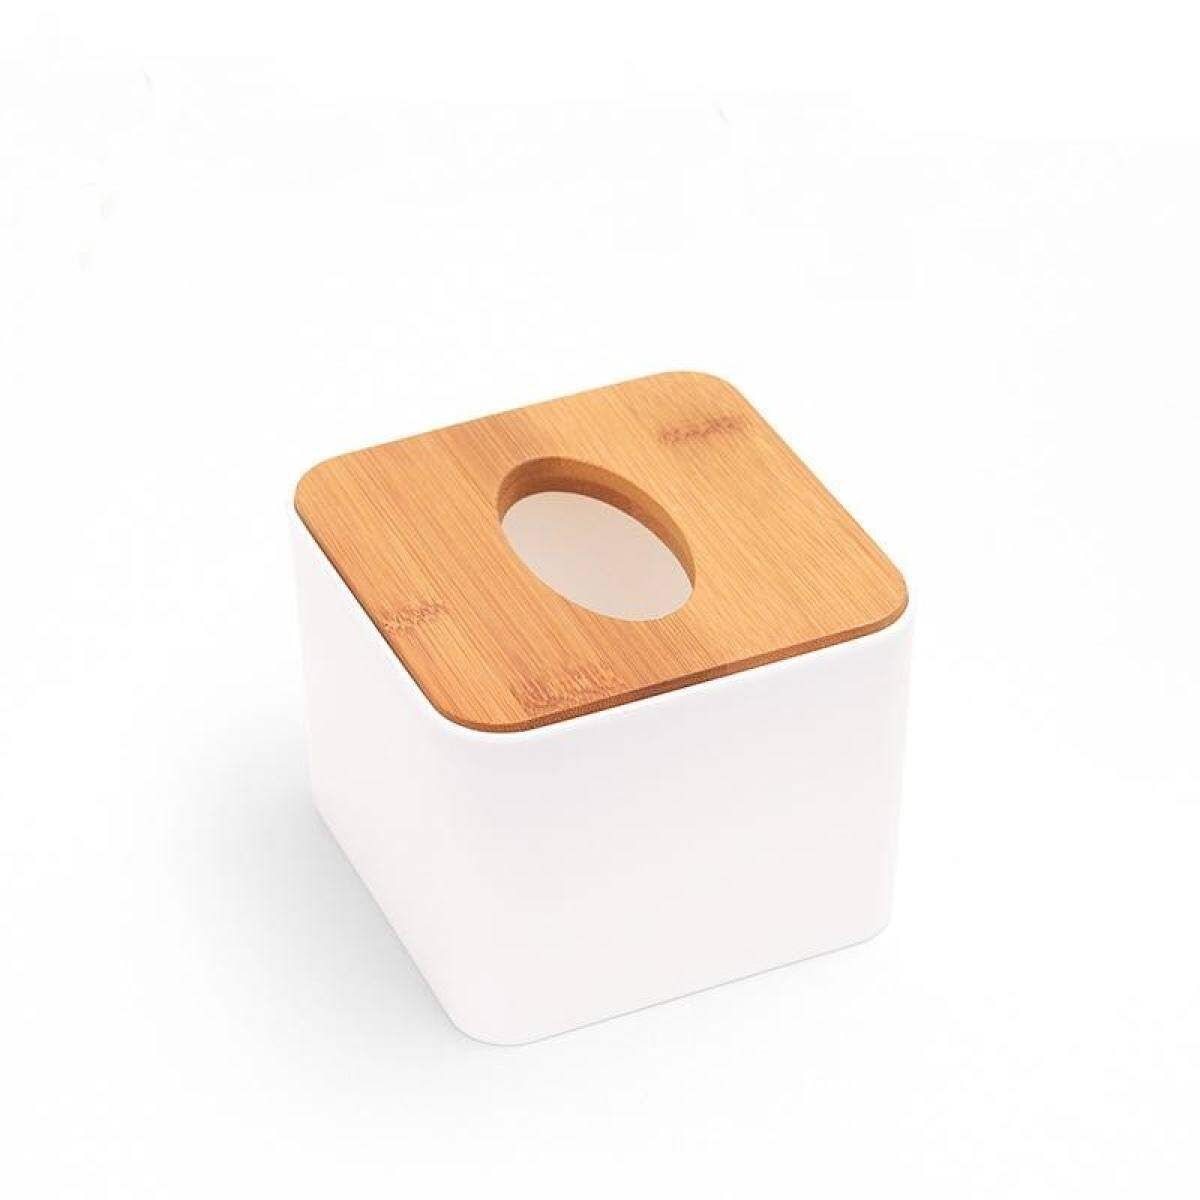 Multifunctional Wooden Tissue Box Modern Simple Home Car Decoration Plastic Napkin Storage Case Paper Container